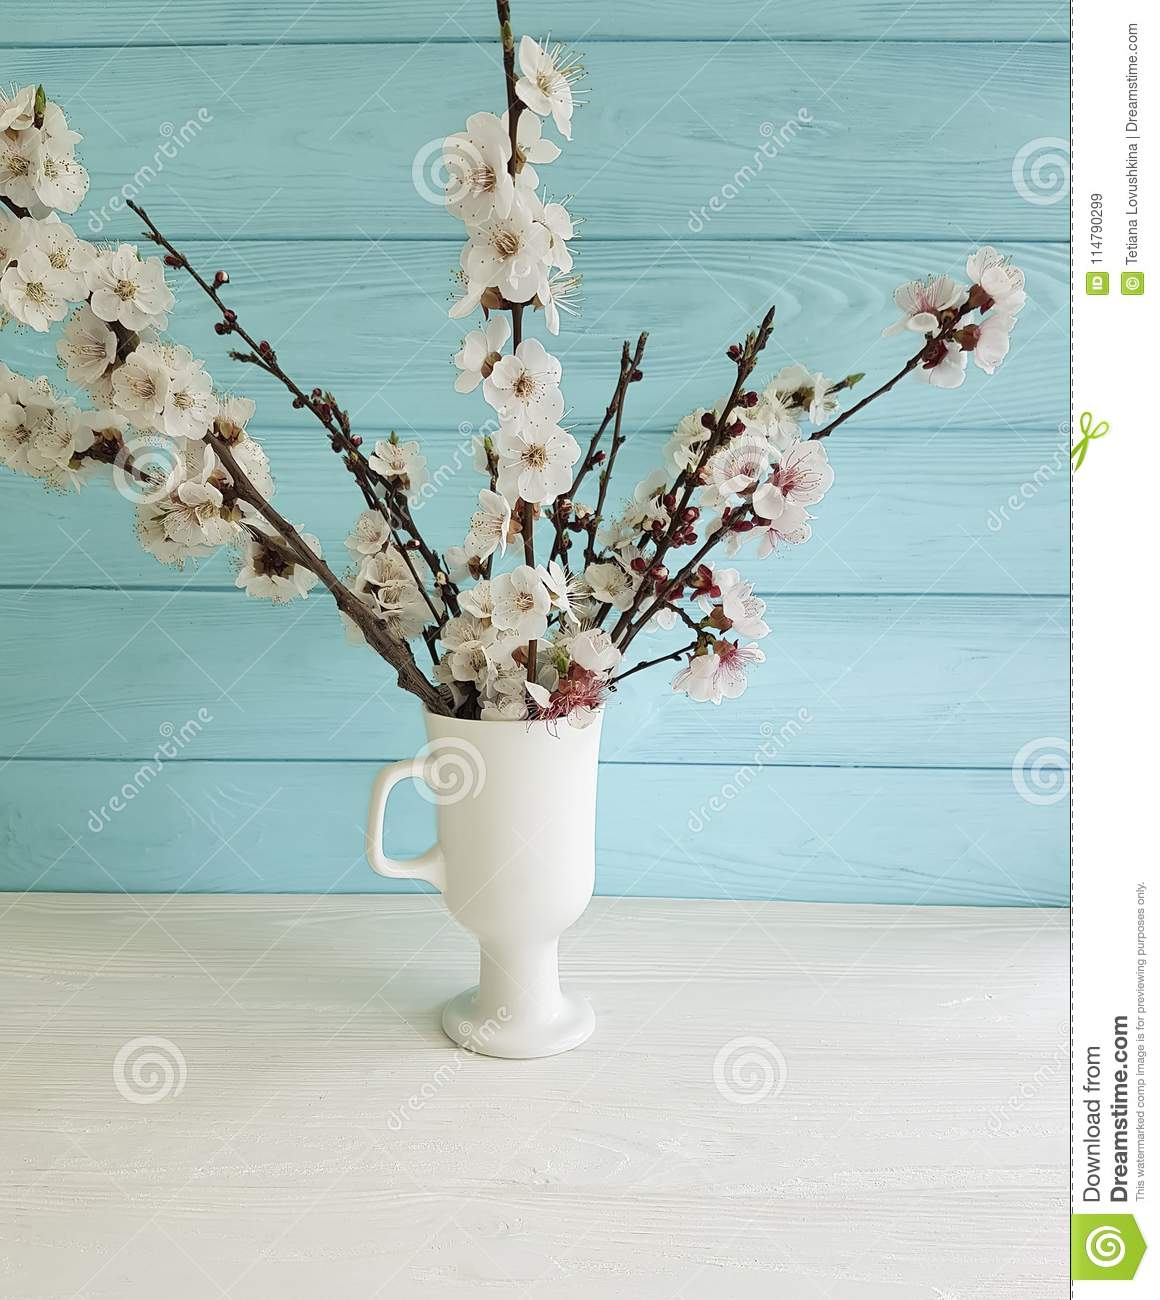 Cherry blossom branch floral decorative beautiful in a vase on a colored wooden background, spring,bouquet